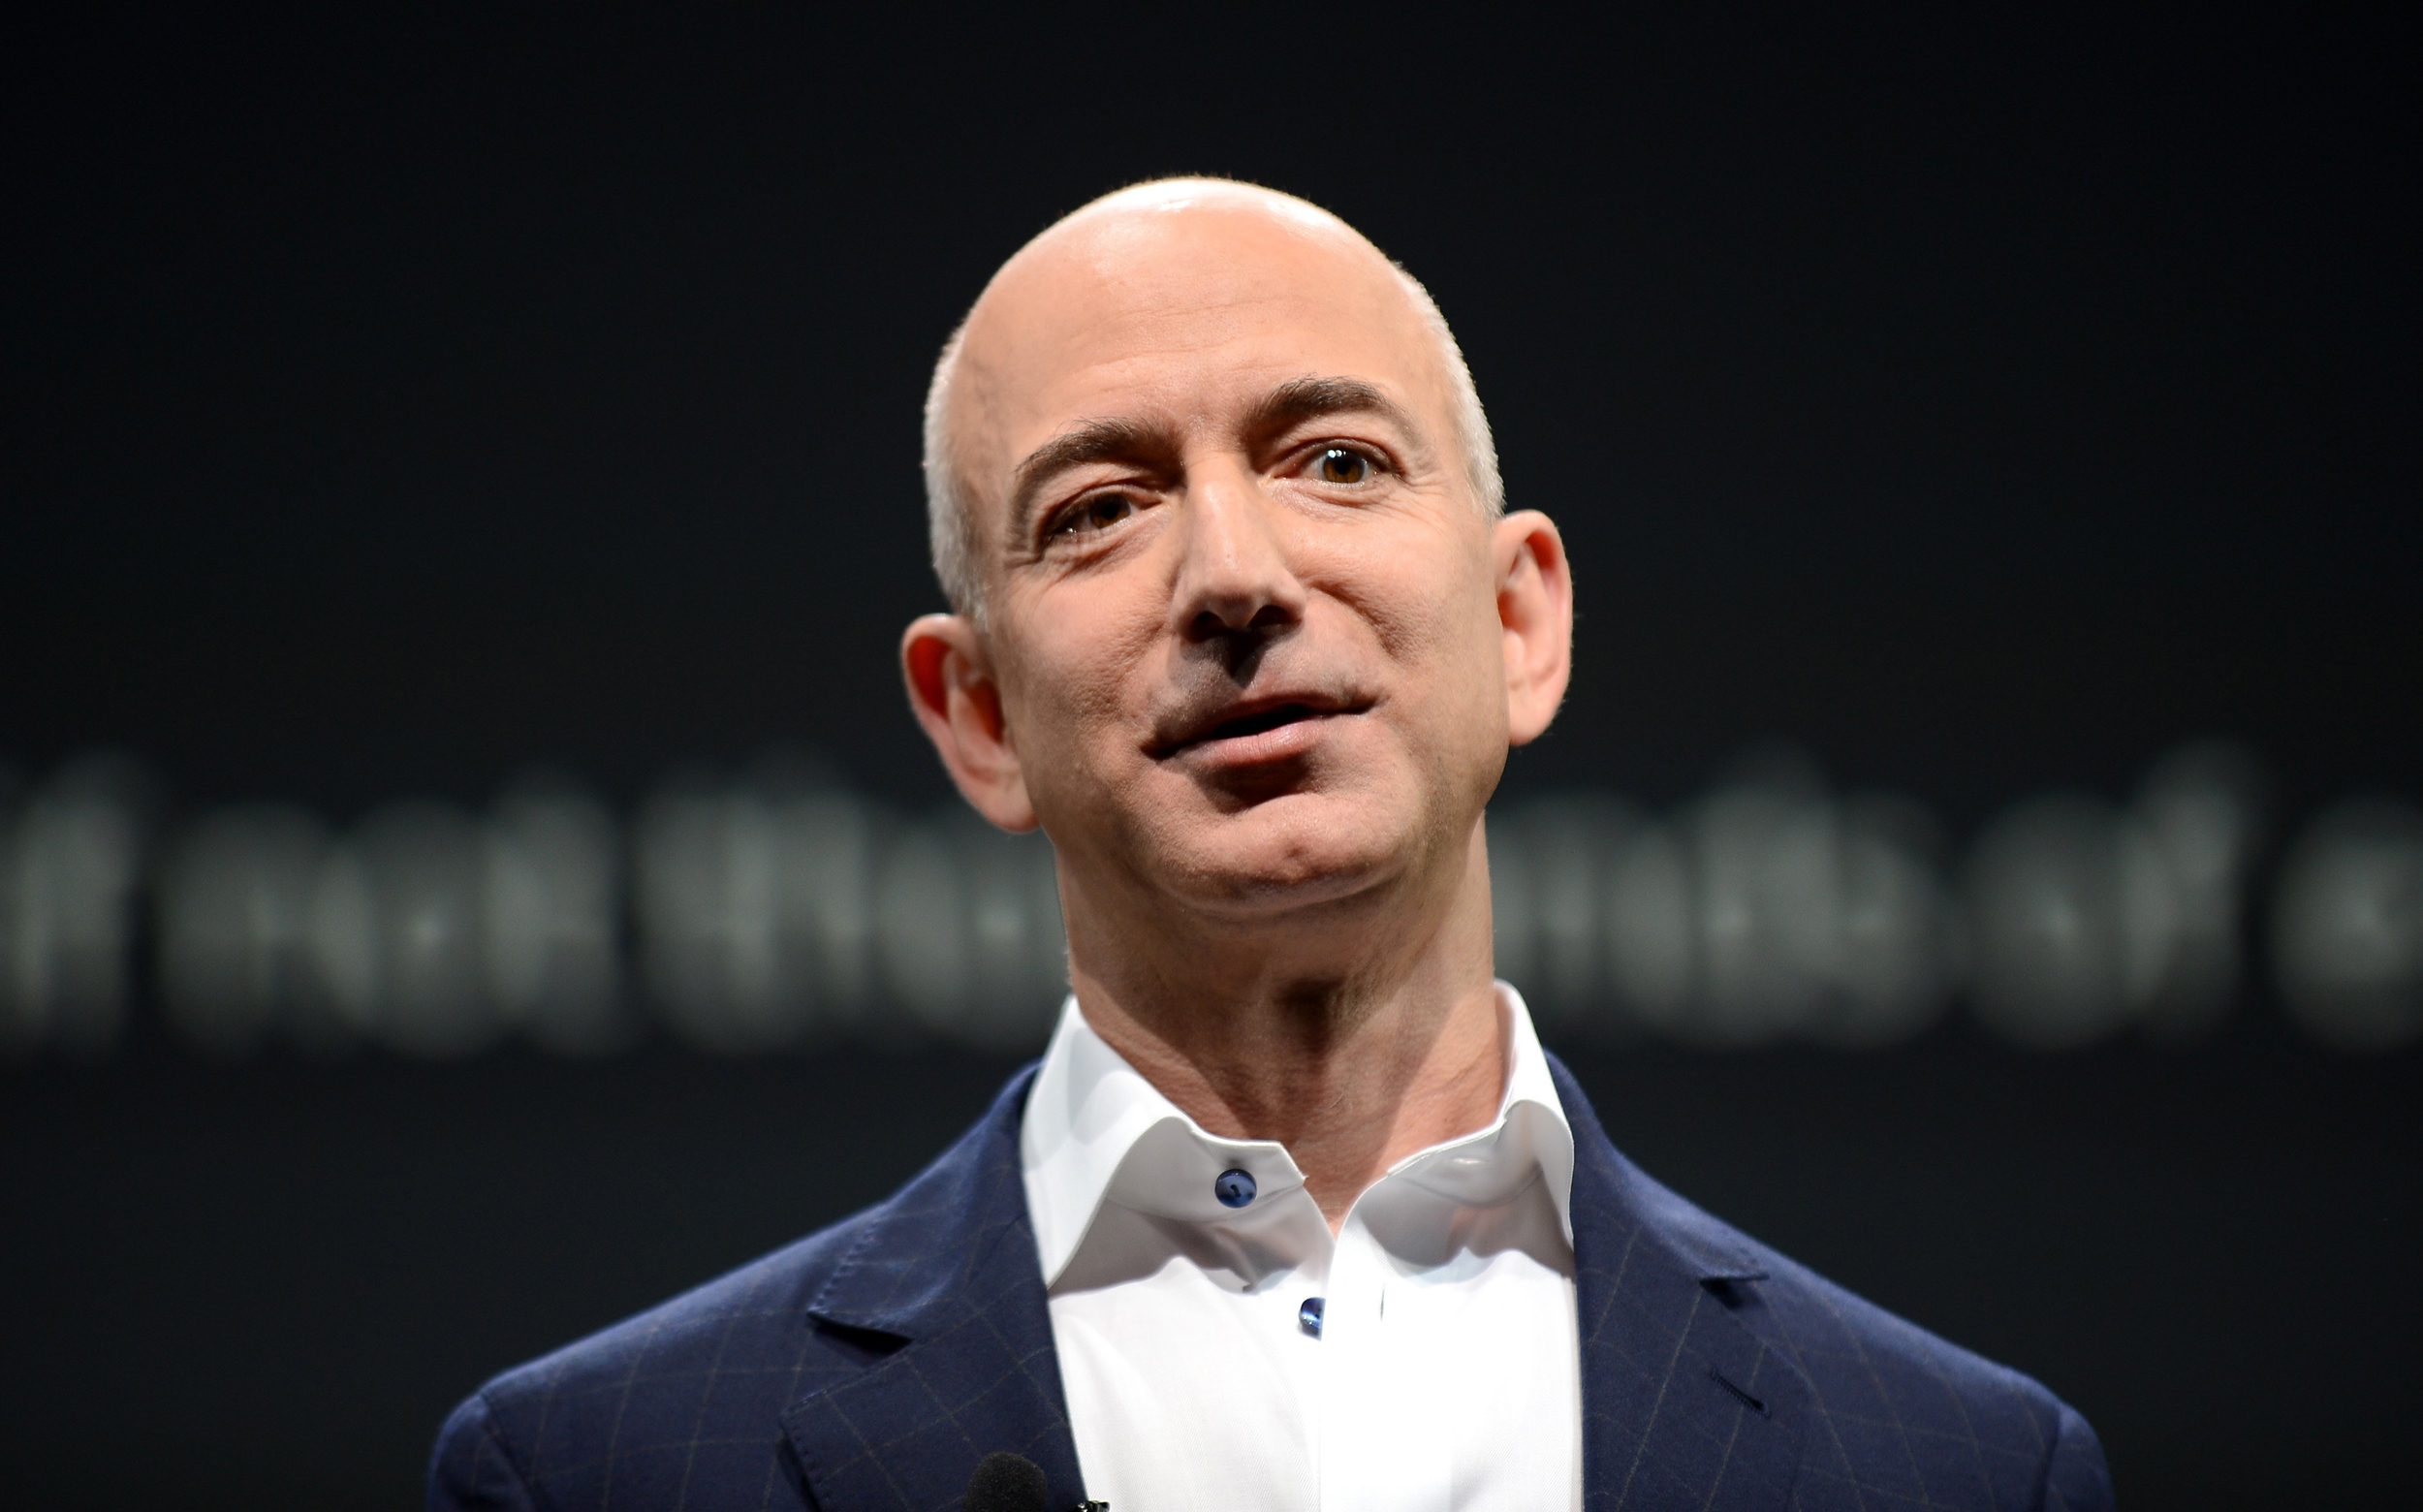 Jeff Bezos (Briefly) Becomes the World's Richest Man